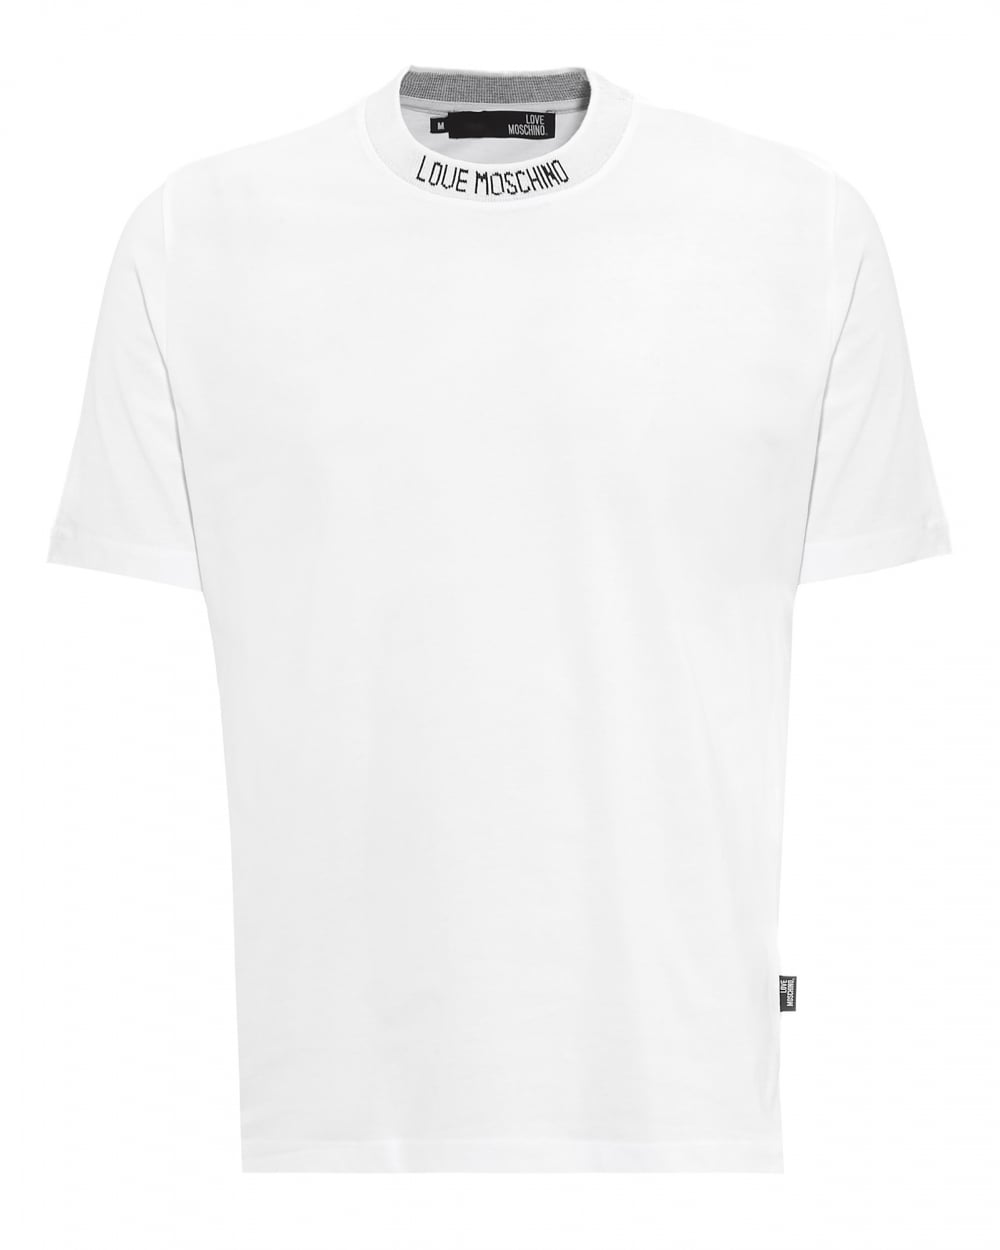 love moschino mens neck logo tshirt plain regular fit